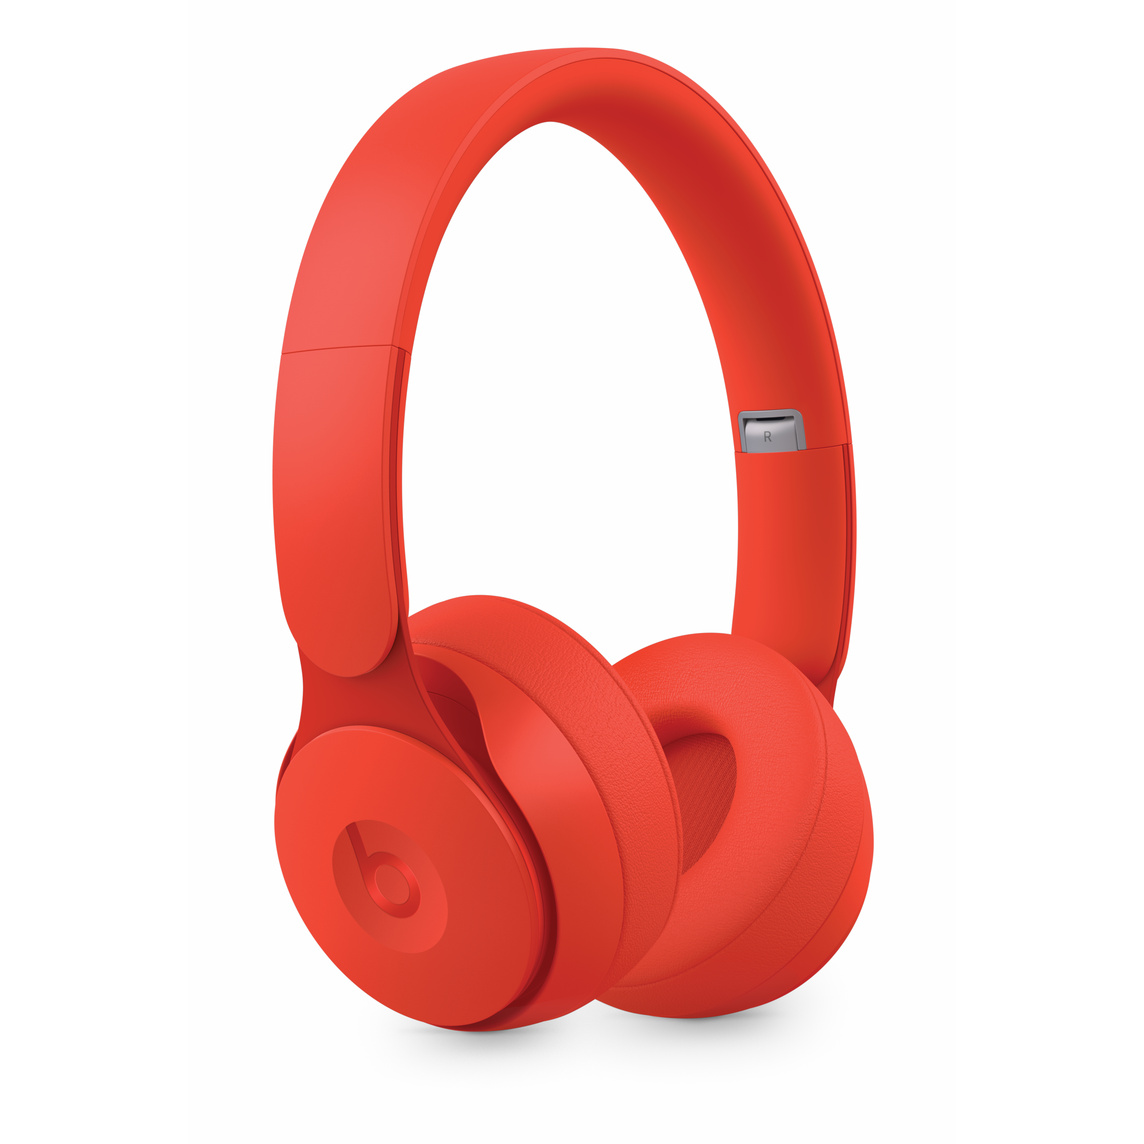 Beats Solo Pro Wireless Noise Cancelling Headphones More Matte Collection Red Apple